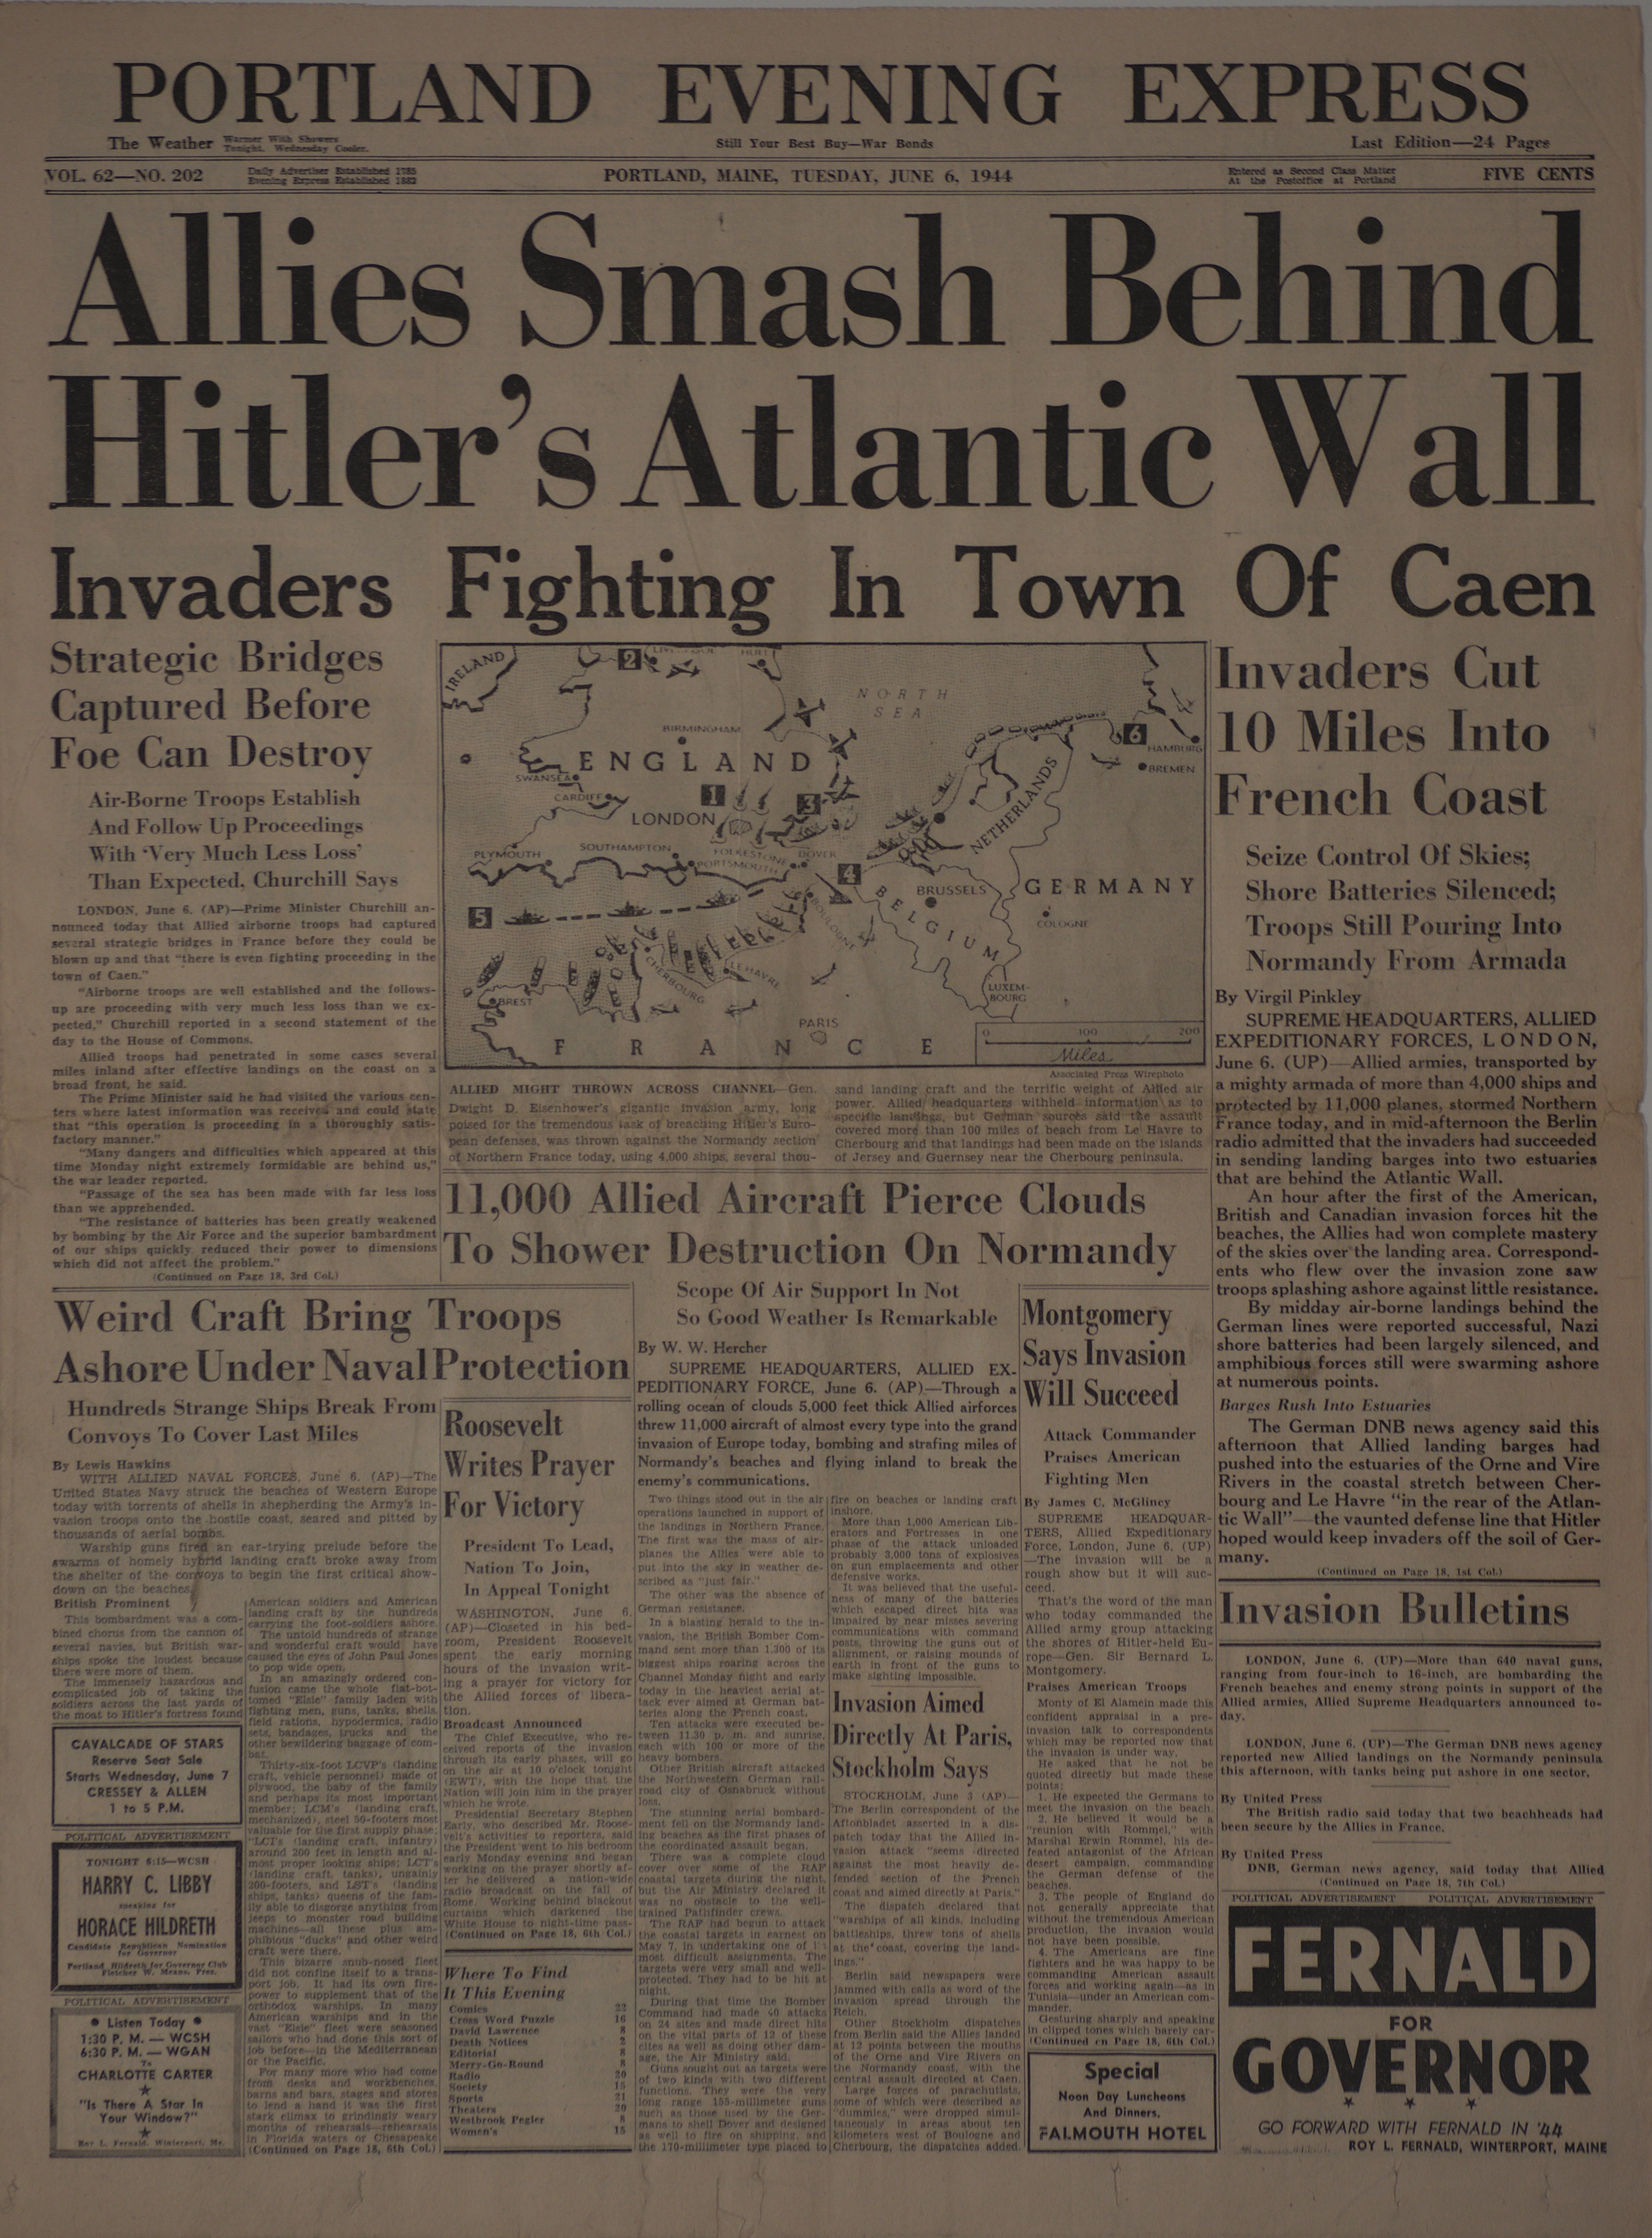 Portland Evening Express reporting about Normandy.